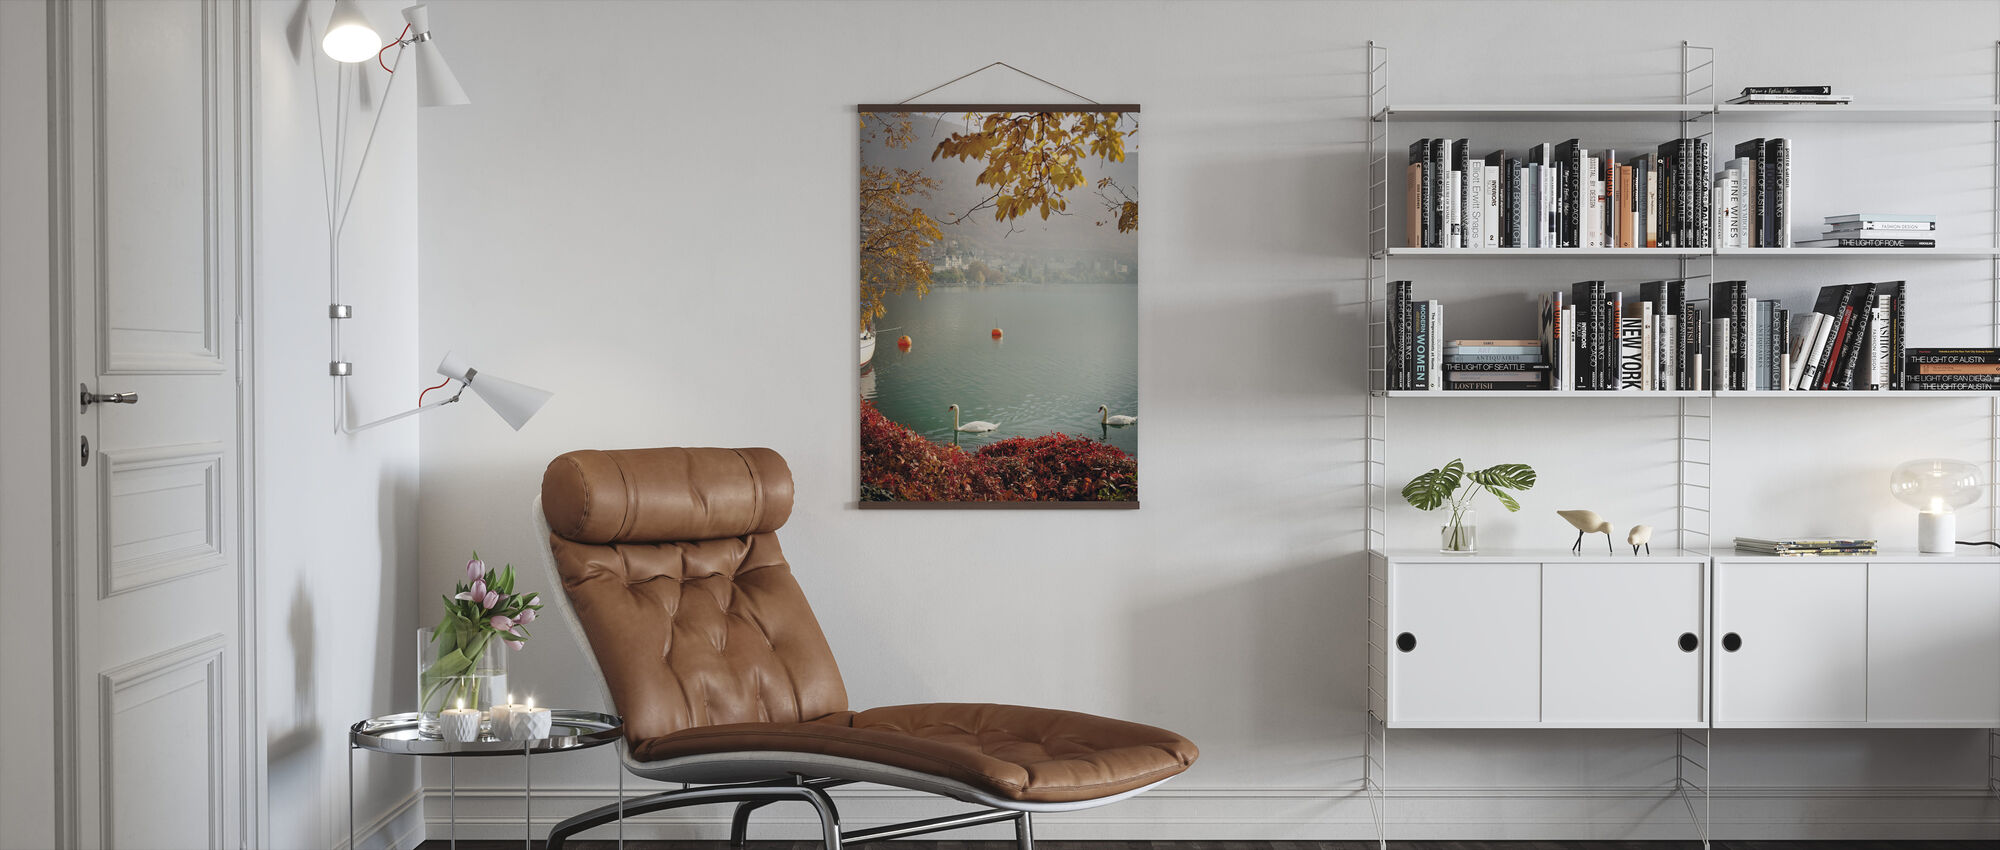 Autumn in Montreux, Switzerland, Europe - Poster - Living Room